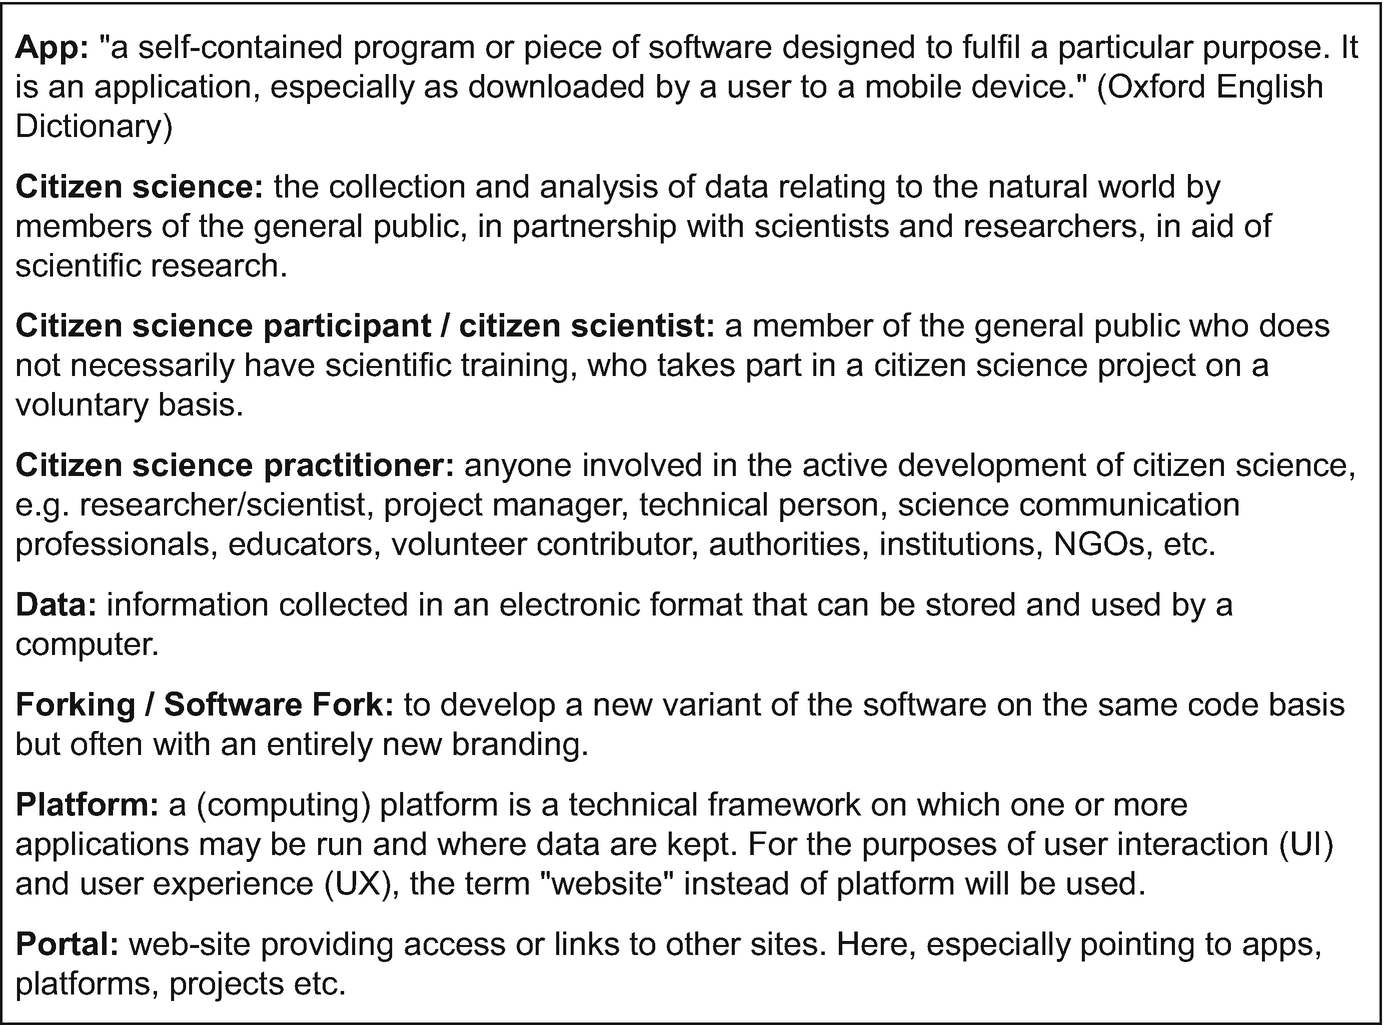 Developing Mobile Applications for Environmental and Biodiversity